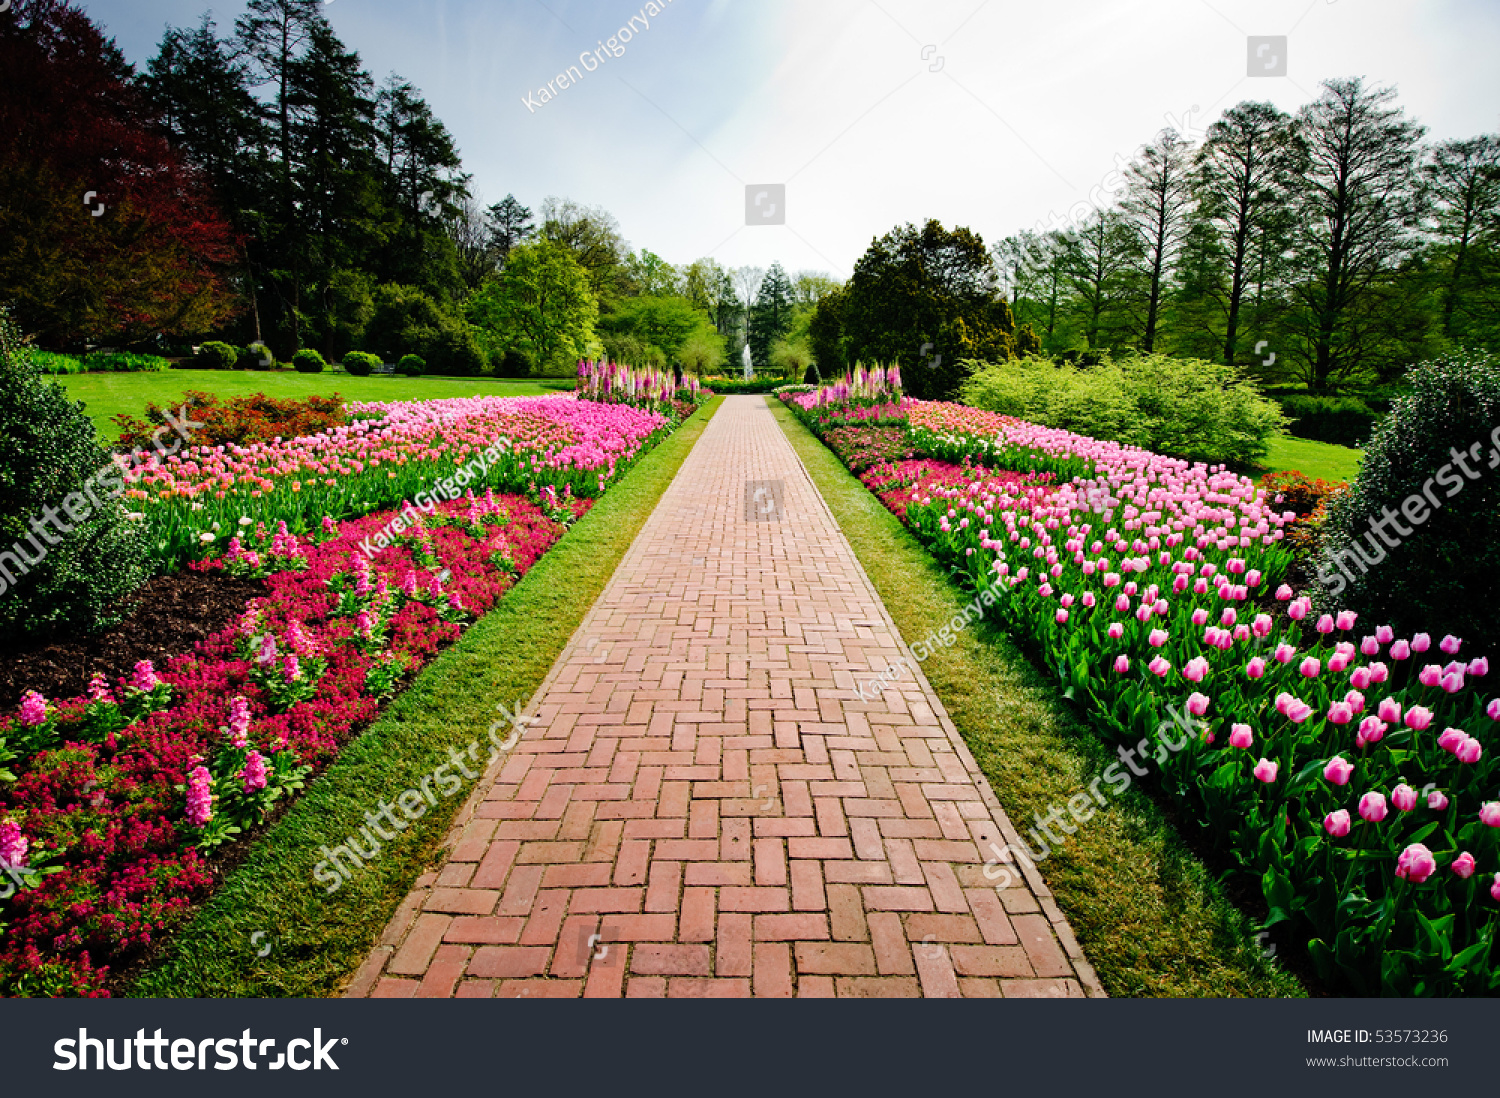 Longwood gardens stock photo 53573236 shutterstock for Landscaping longwood